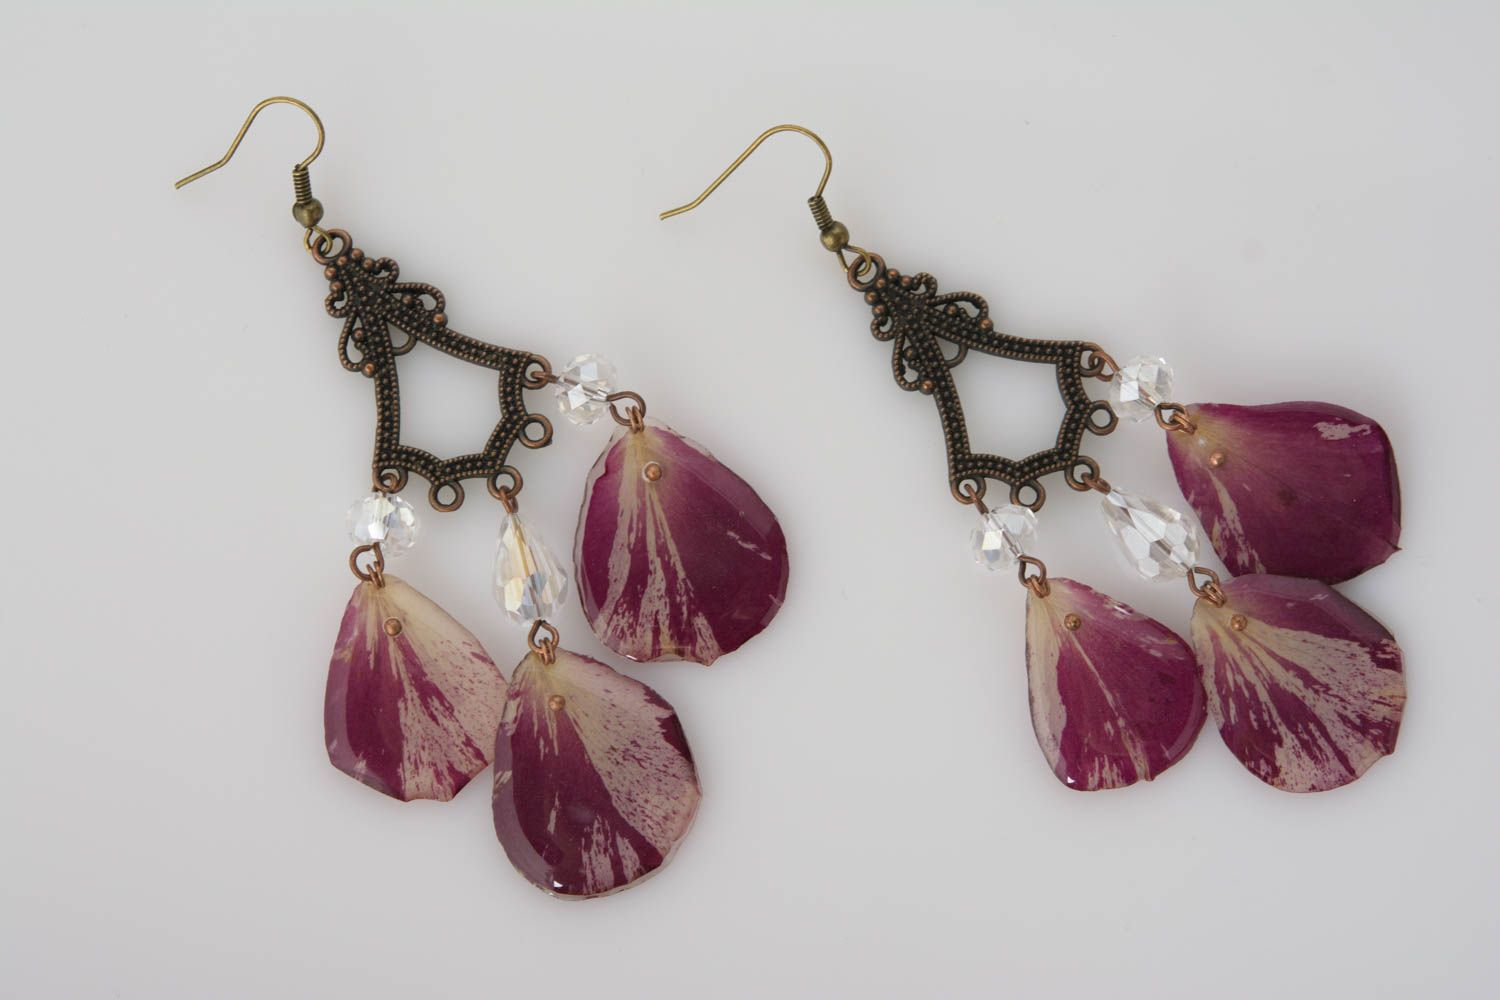 Handmade massive long earrings with rose petals in epoxy resin stylish jewelry photo 4